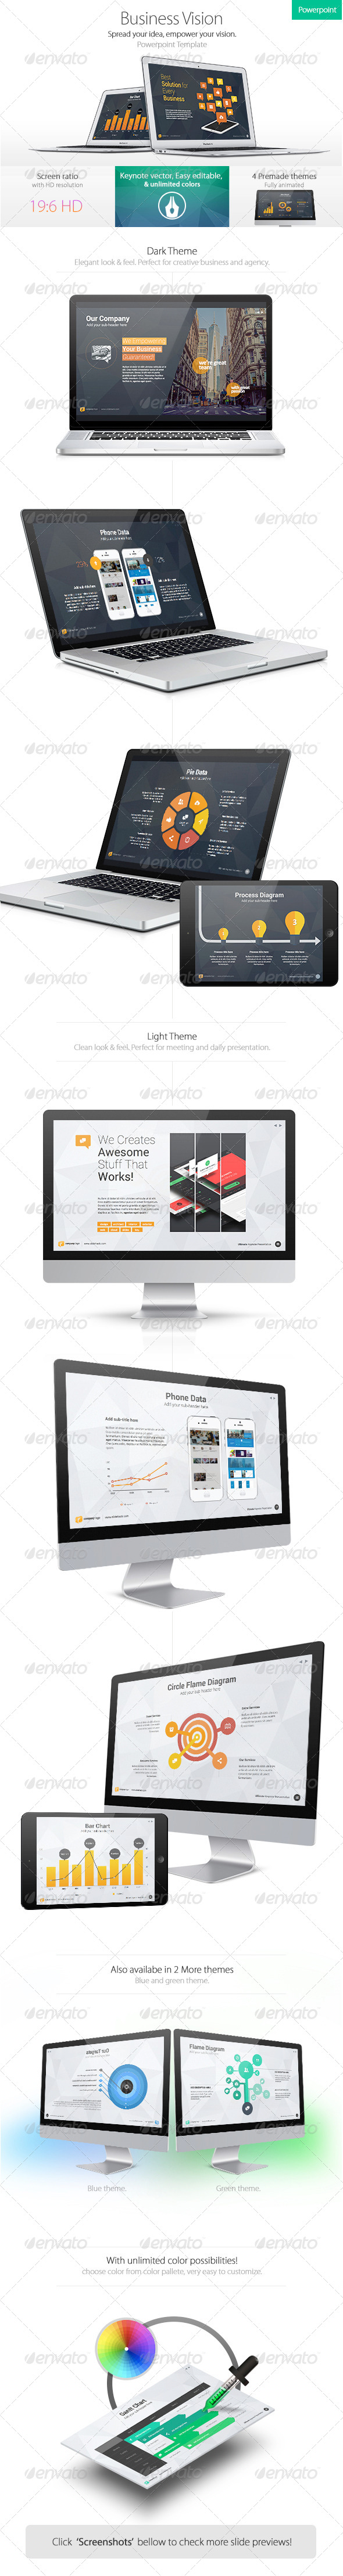 GraphicRiver Business Vision Powerpoint Template 7807057